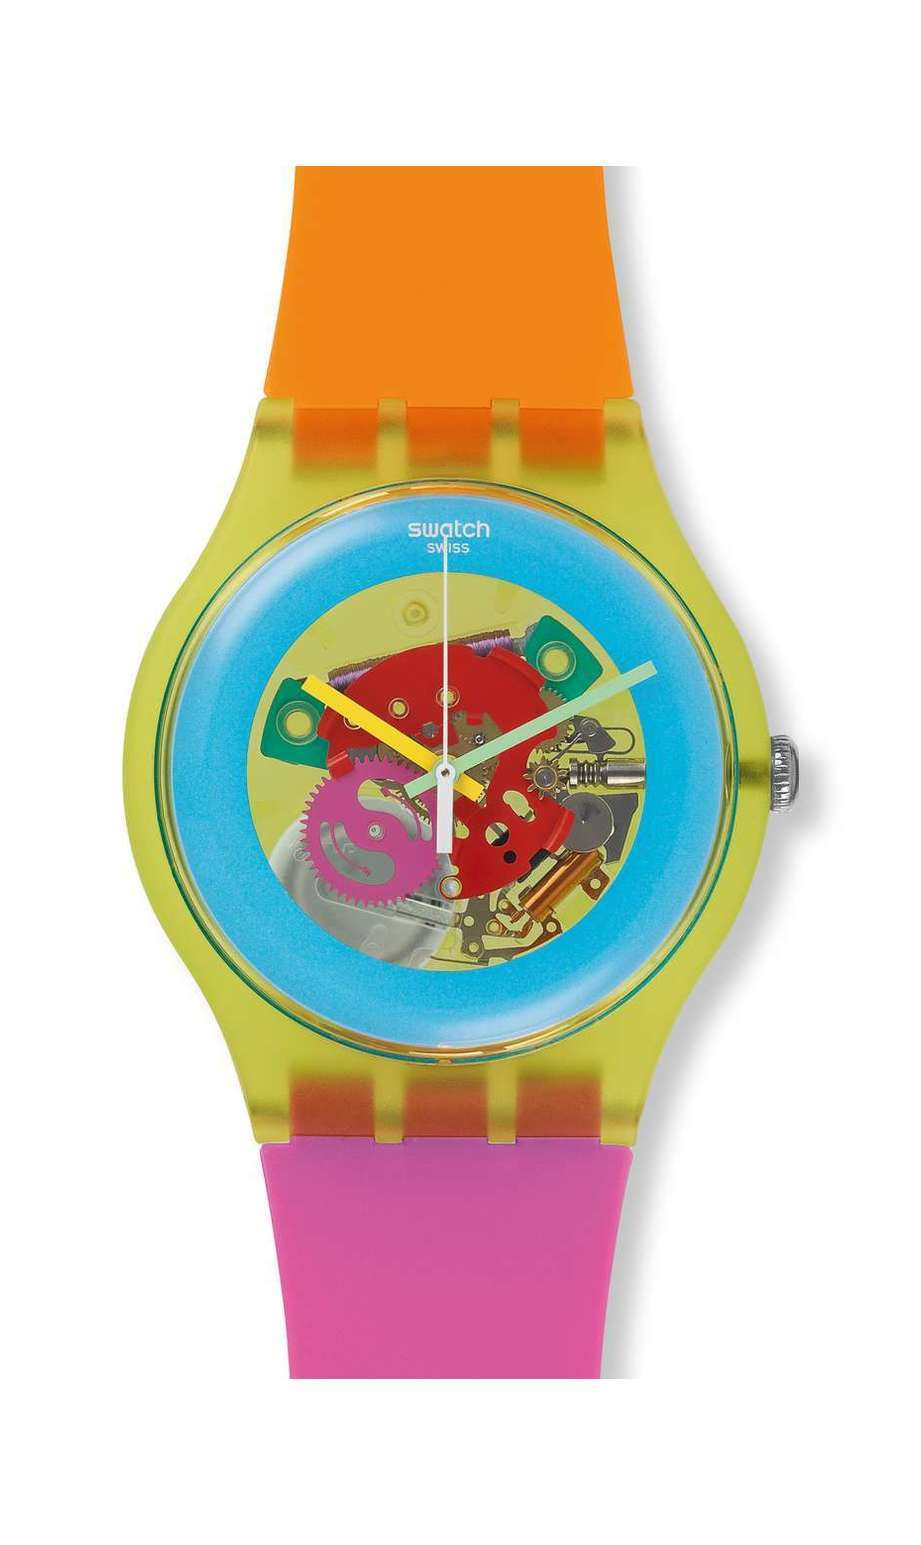 Swatch - COLOR PALETTE - 1